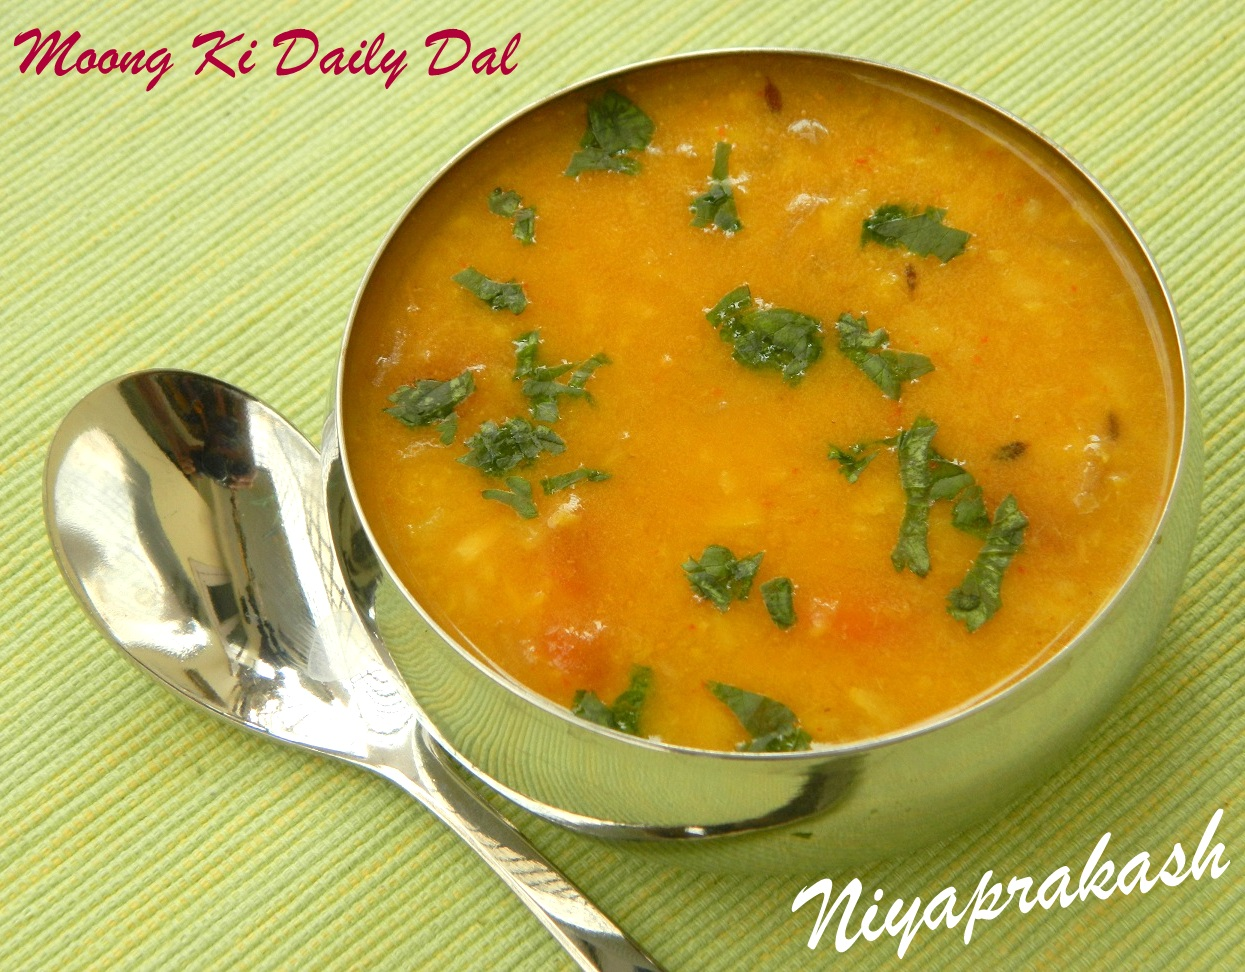 Niyas world moong ki daily dal recipe from sanjeev kapoor moong ki daily dal recipe from sanjeev kapoor forumfinder Image collections